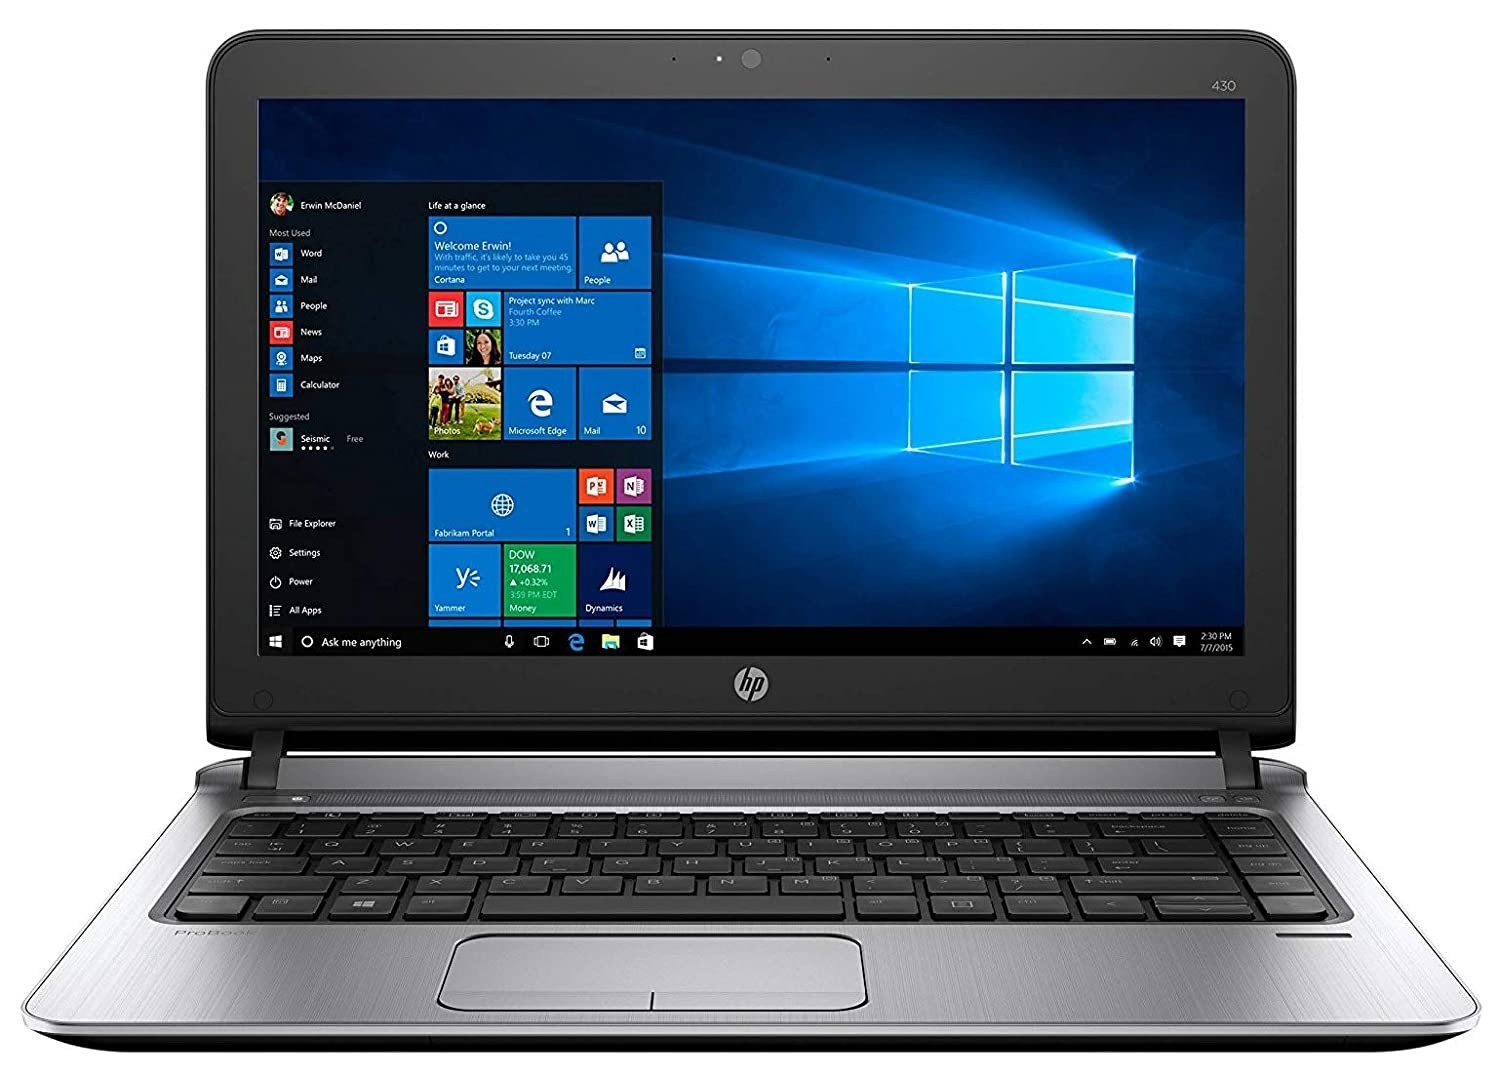 Refurbished laptops & desktops - REFURBISHED HP PROBOOK 430 G2 (CORE I5 4TH GEN/8GB/320GB/WEBCAM/13.3''/DOS)